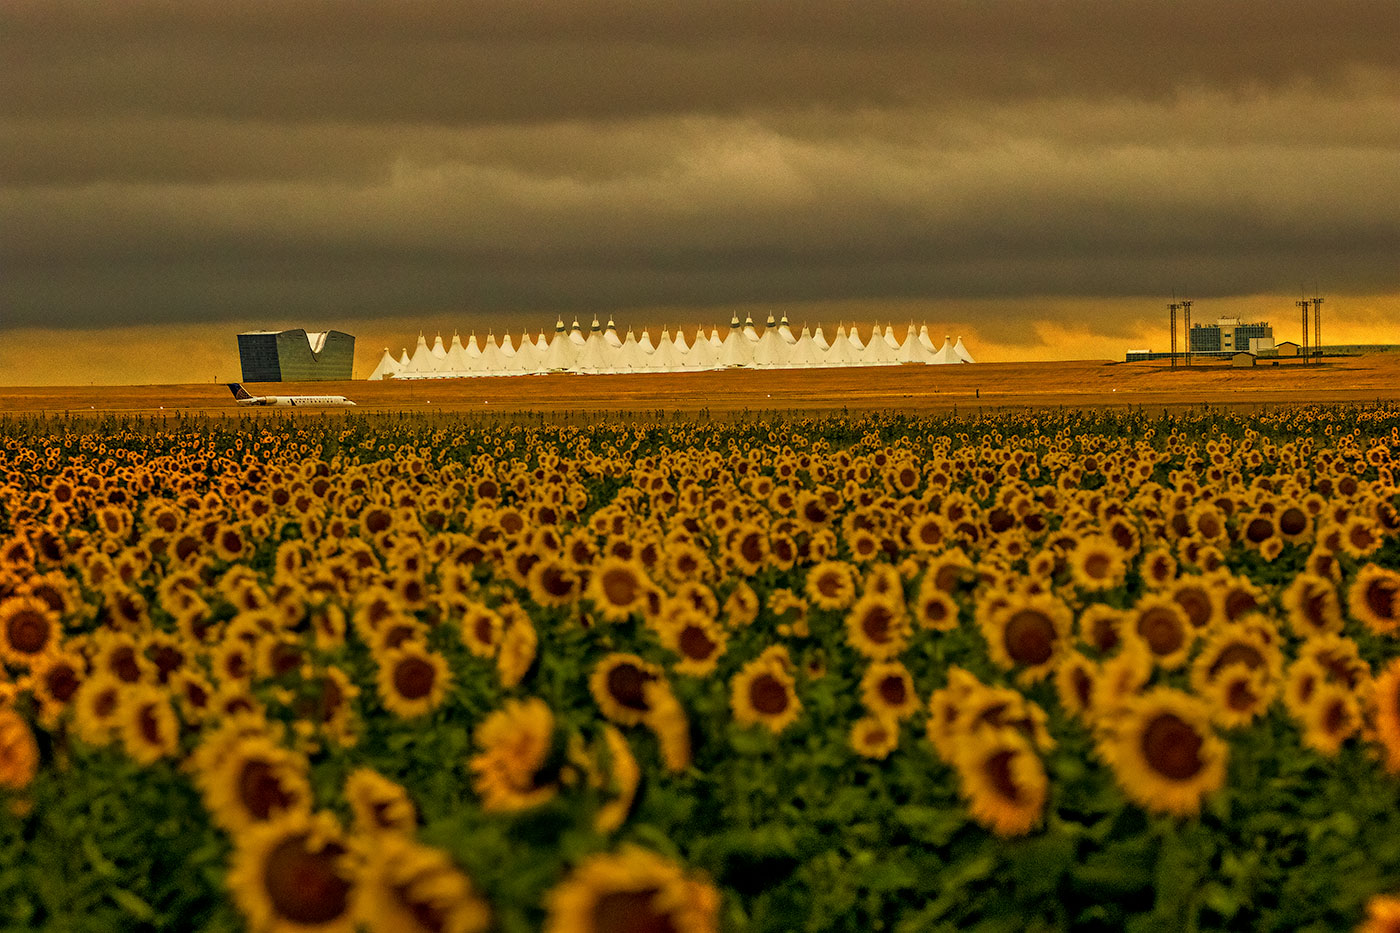 Sunflowers at the Airport